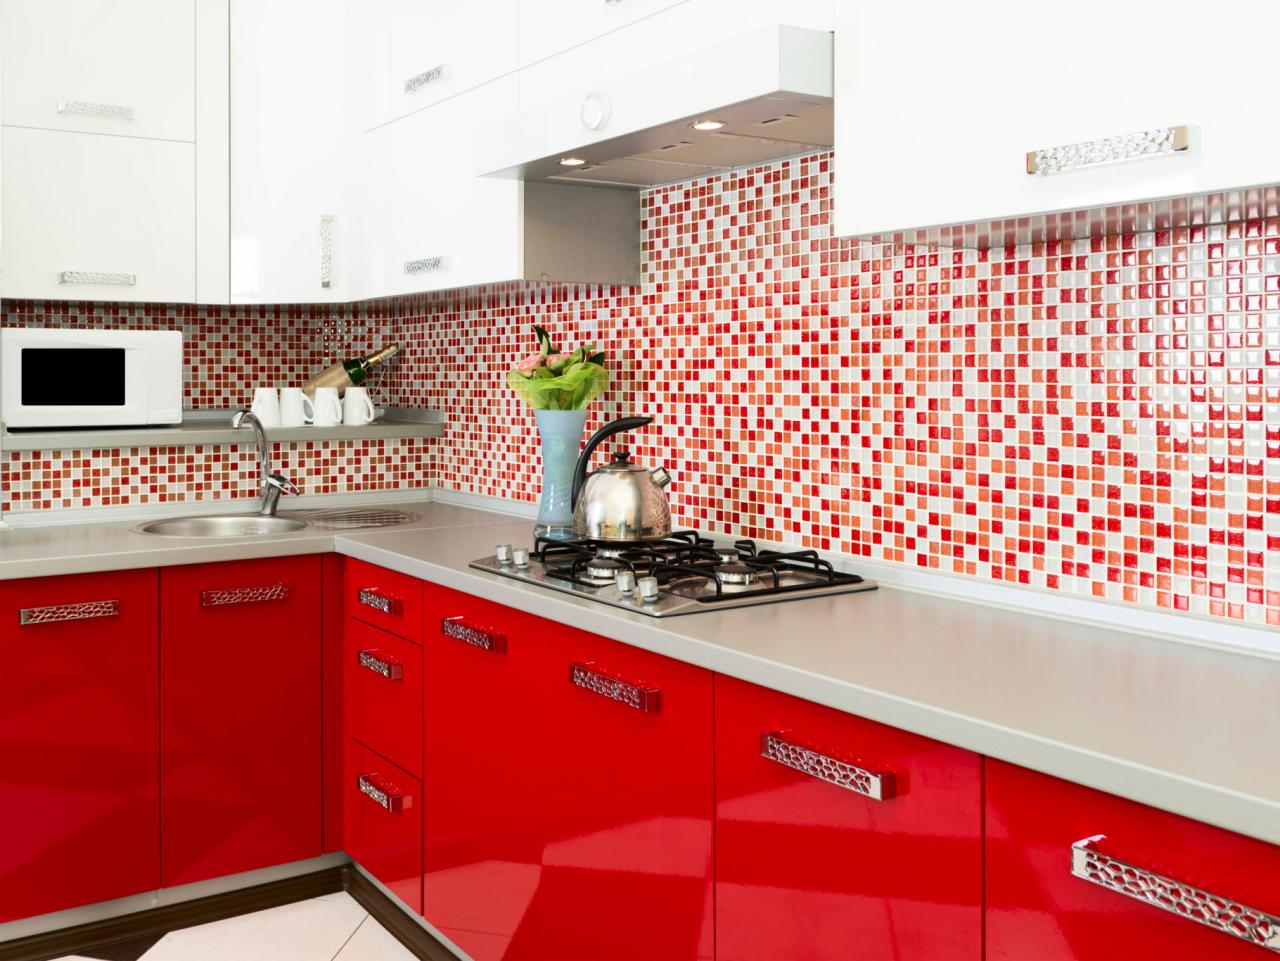 ts-159025550_modern-red-kitchen_s4x3-jpg-rend-hgtvcom-1280-960